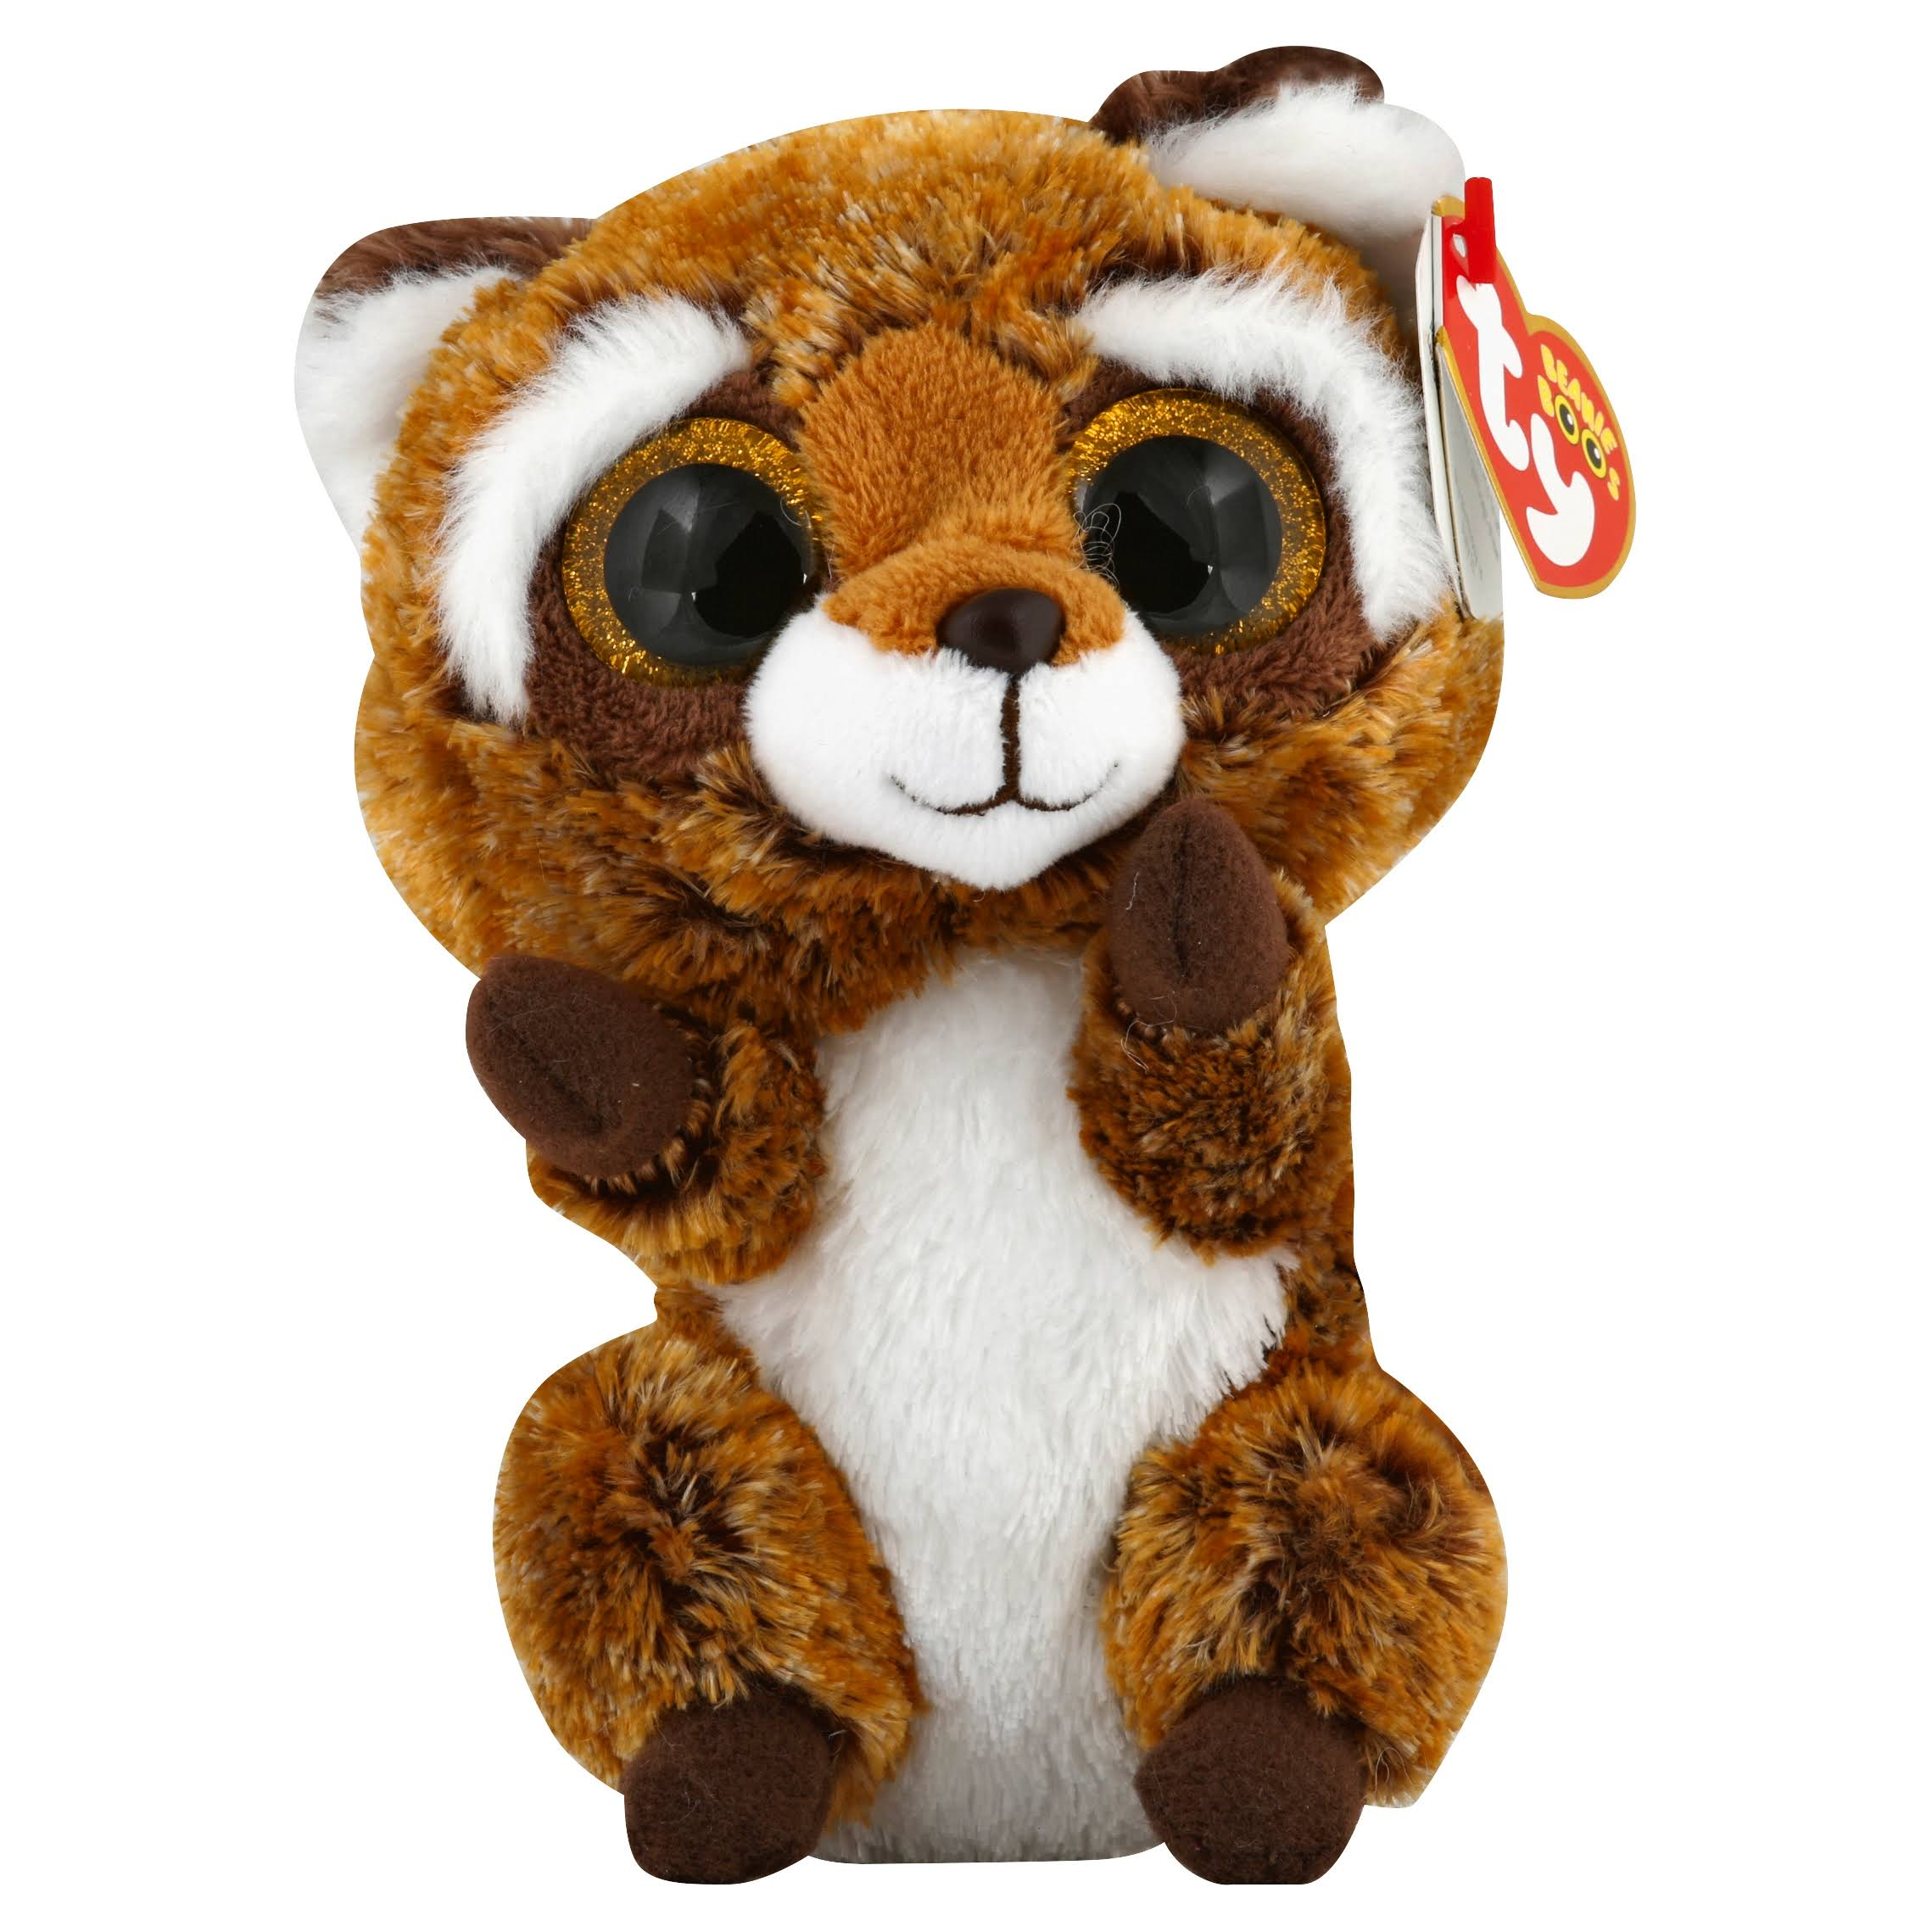 TY Beanie Boos - RUSTY the Raccoon (Glitter Eyes) (Regular Size - 6 inch)